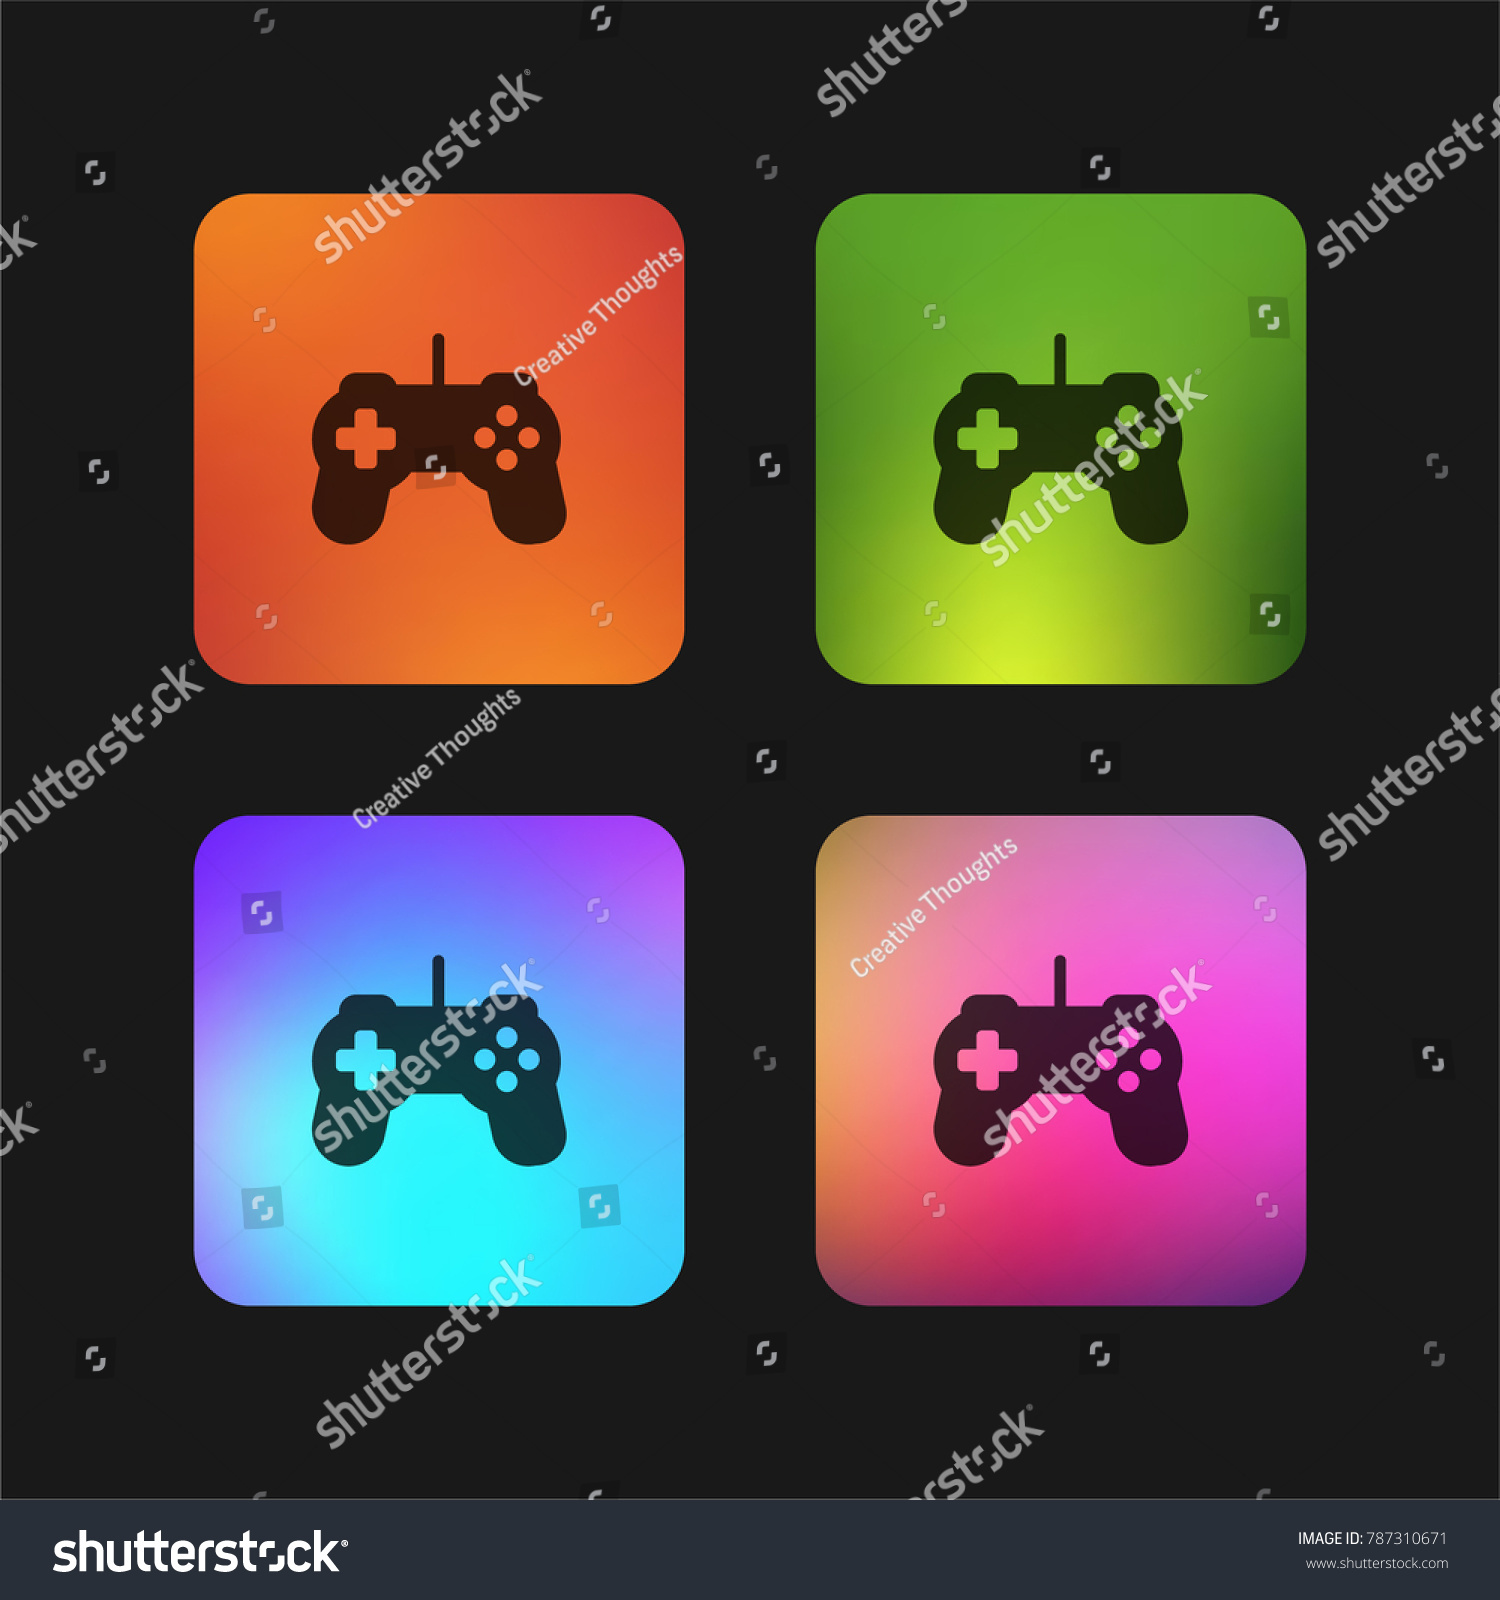 Game Controller Four Color Gradient App Stock Vector (Royalty Free ...